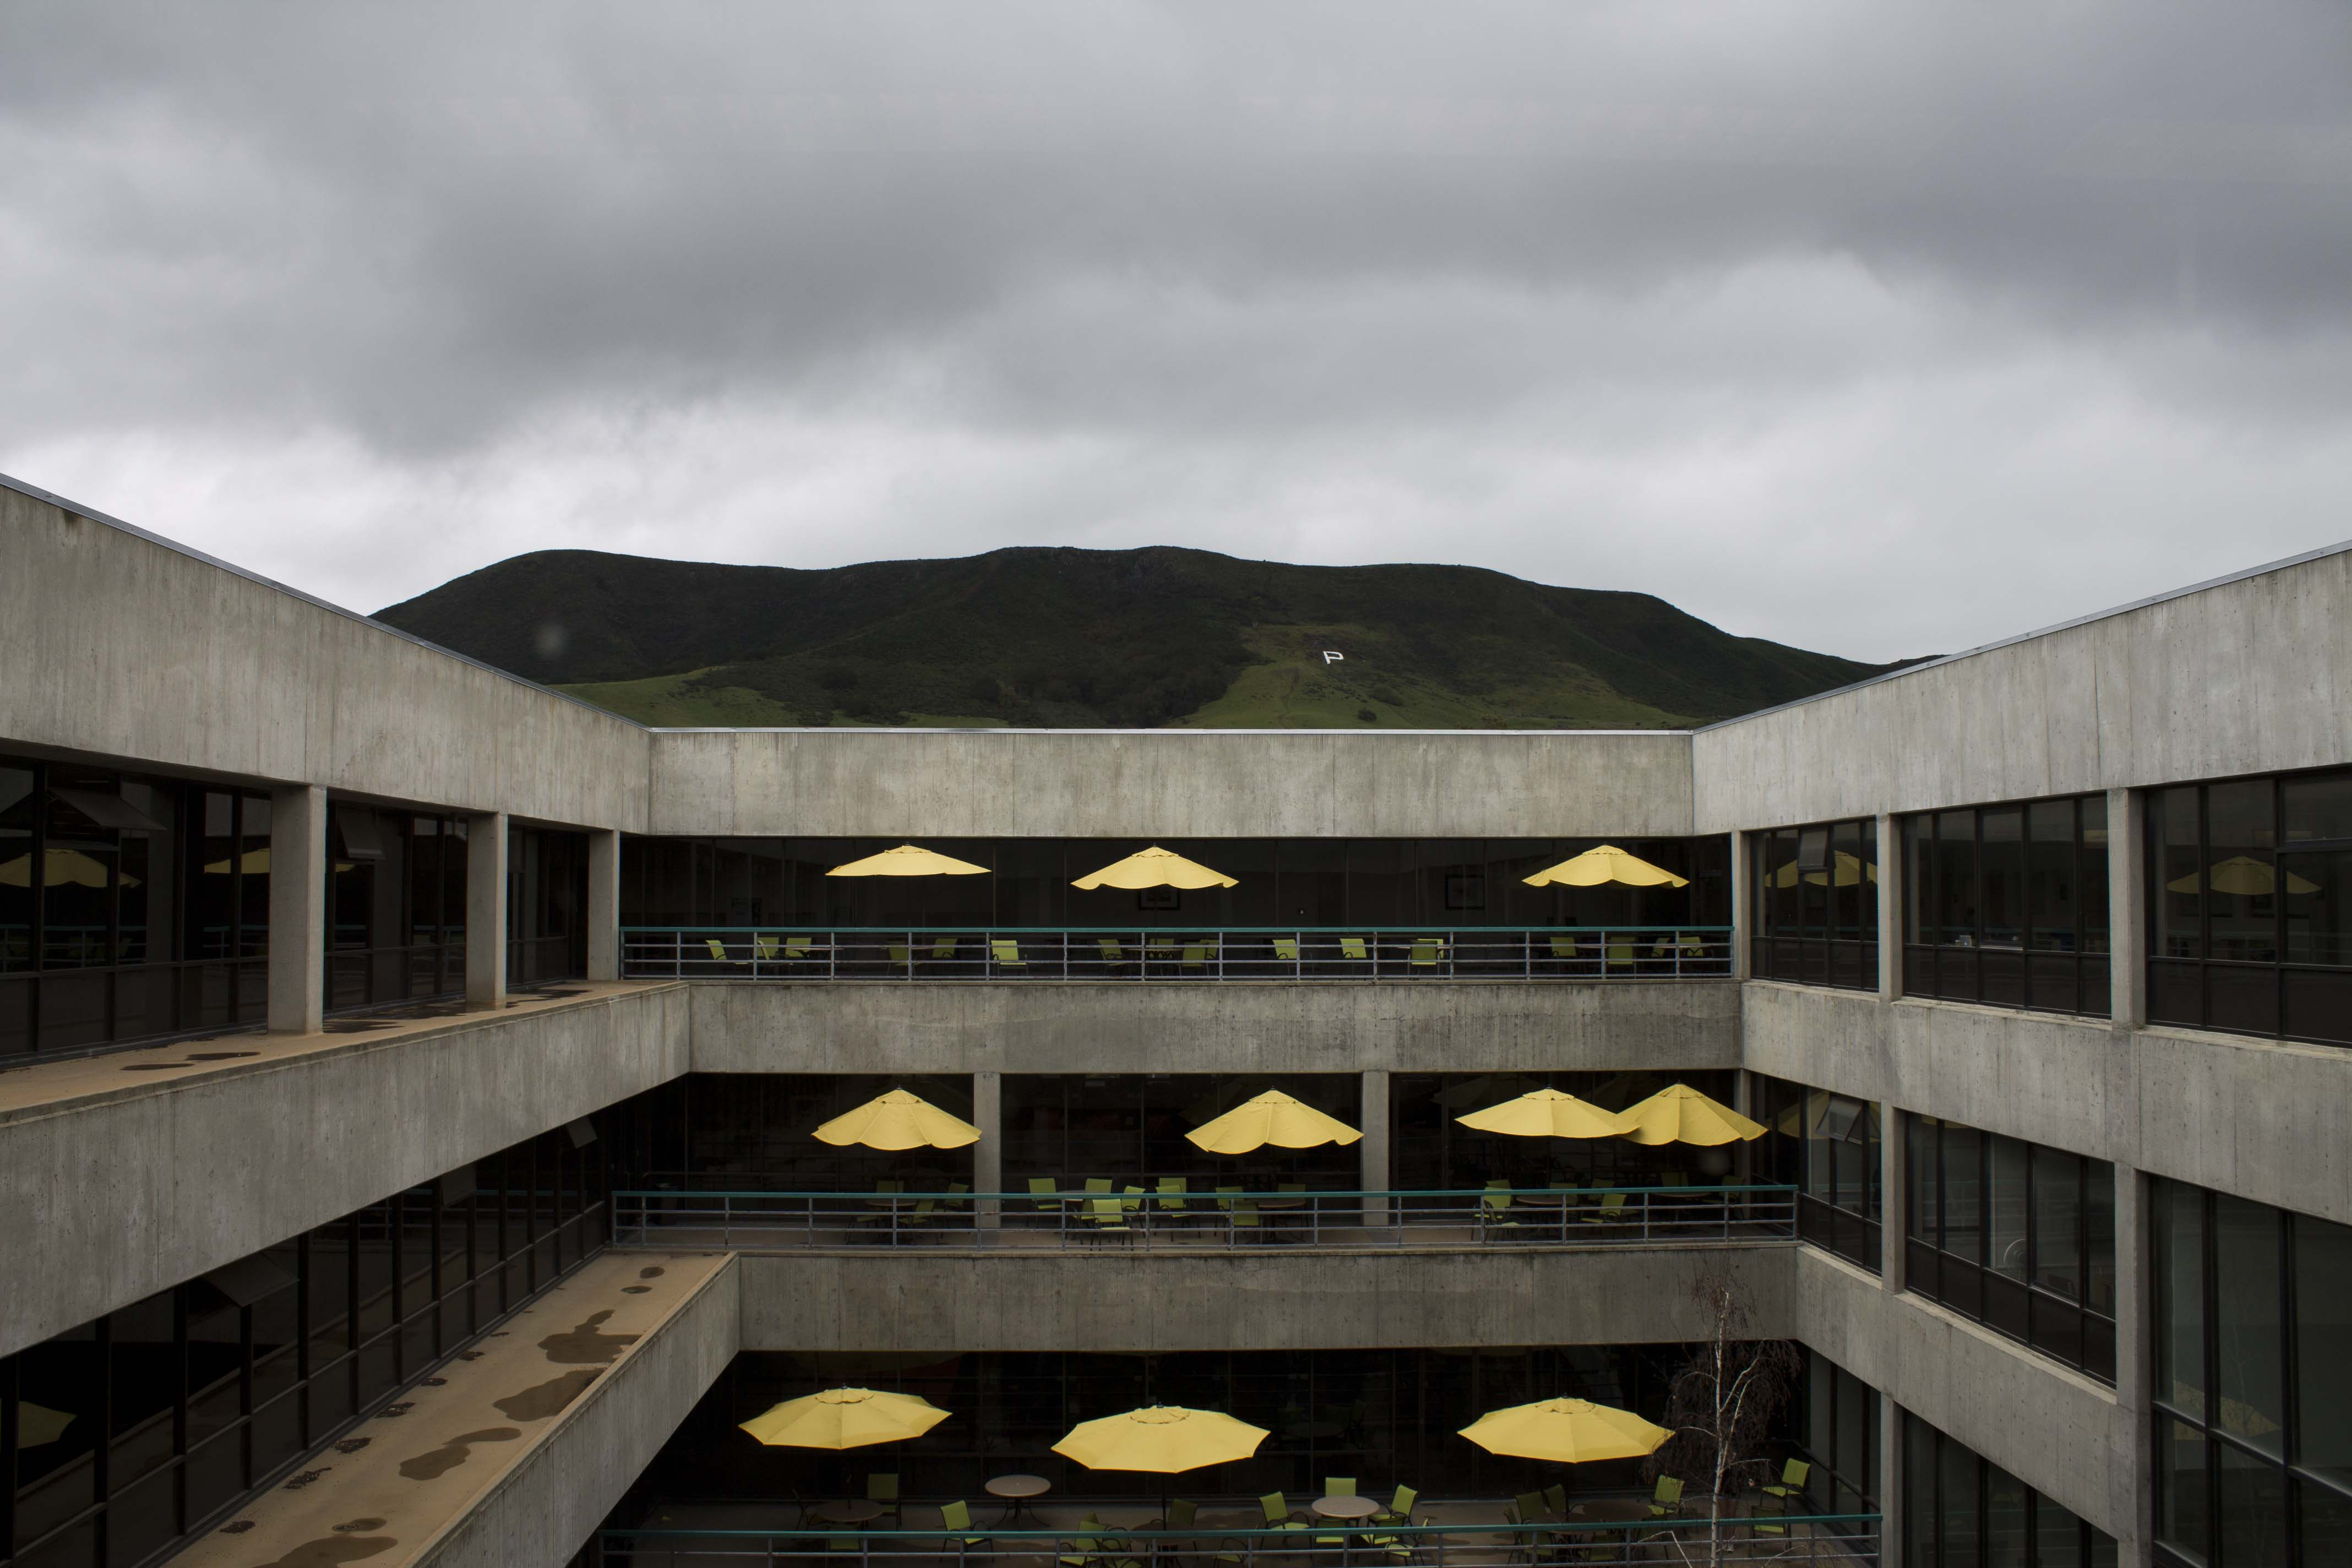 A photo from the 5th floor of Kennedy Library. We are looking out onto several stories of the cement and glass building. The balconies are decorated with tables with yellow umbrellas. In the background, there are gray rainclouds over a green mountain with a white letter P painted on it.